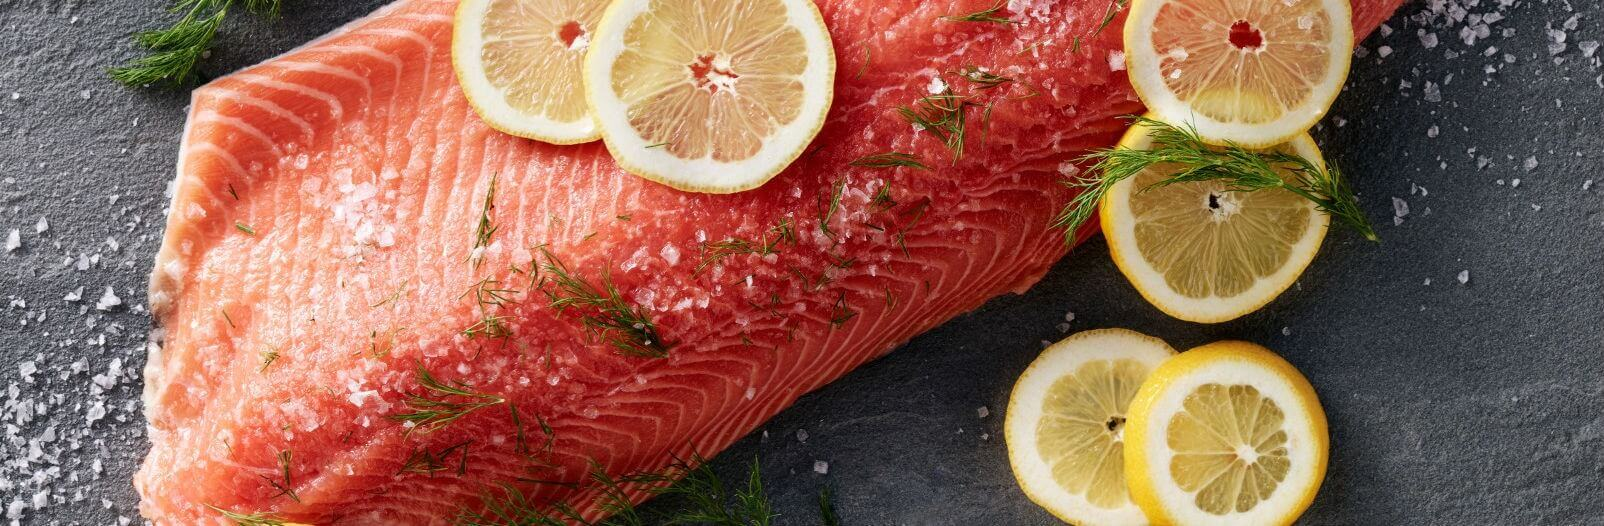 Fresh & Unique | Produce, Meat & Seafood, Bakery - The ...